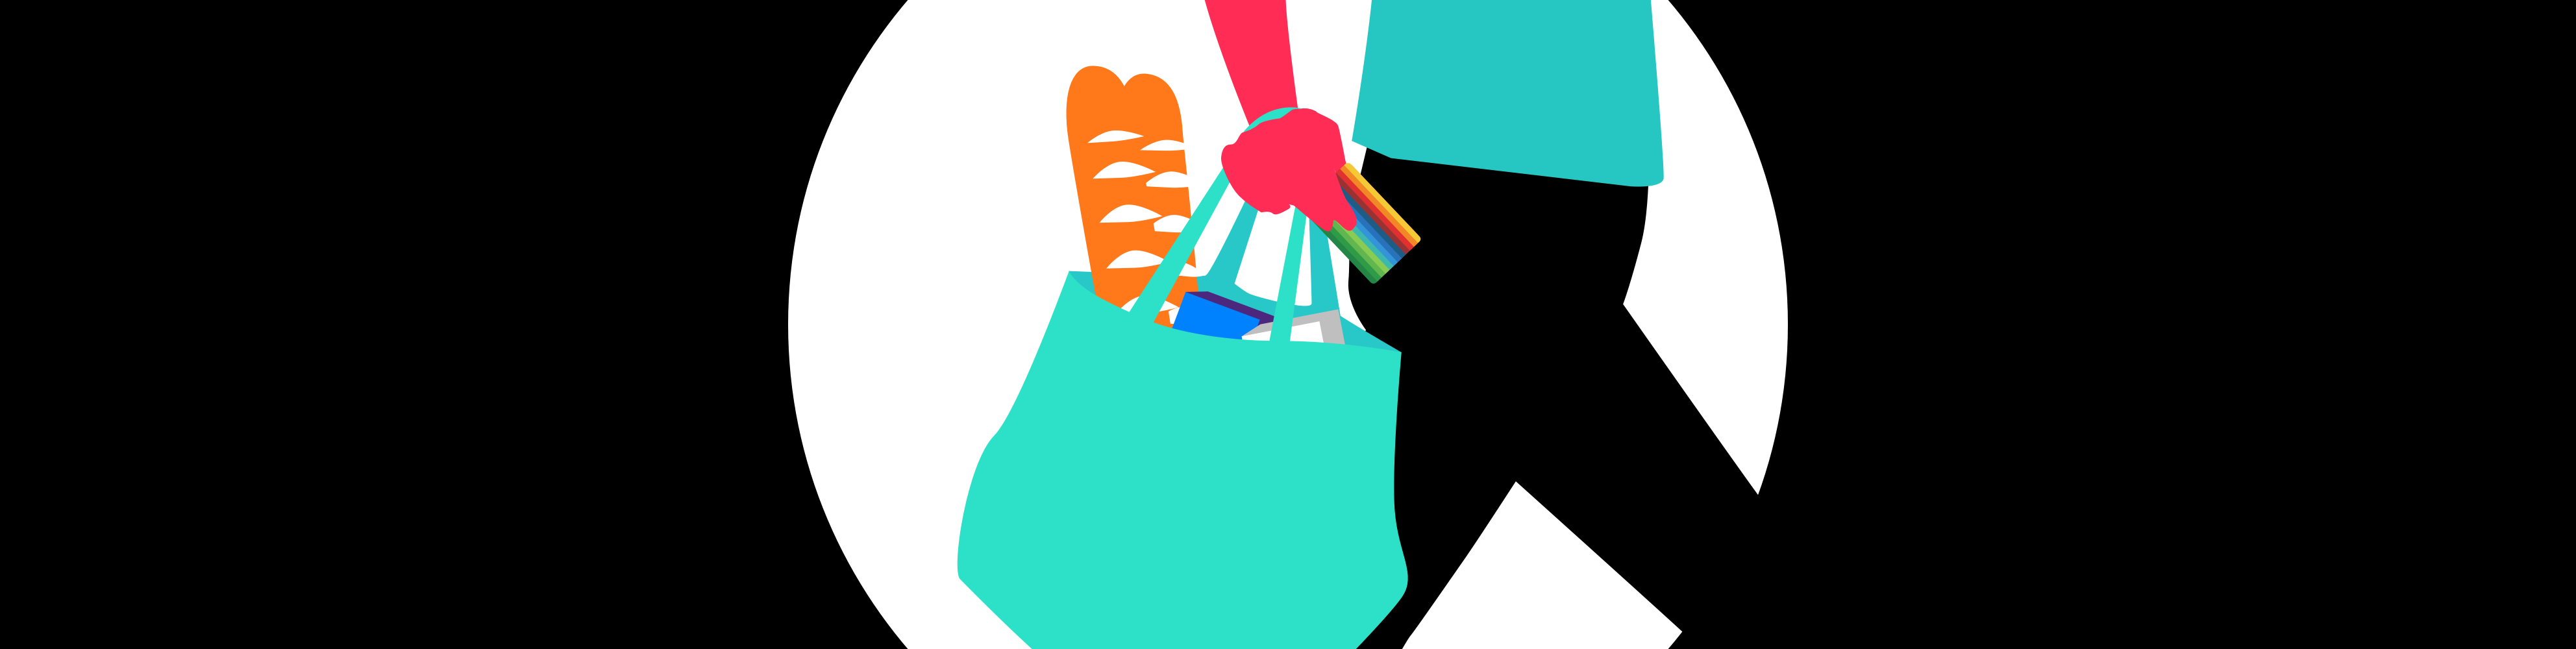 Illustrated guy with groceries and bunq card